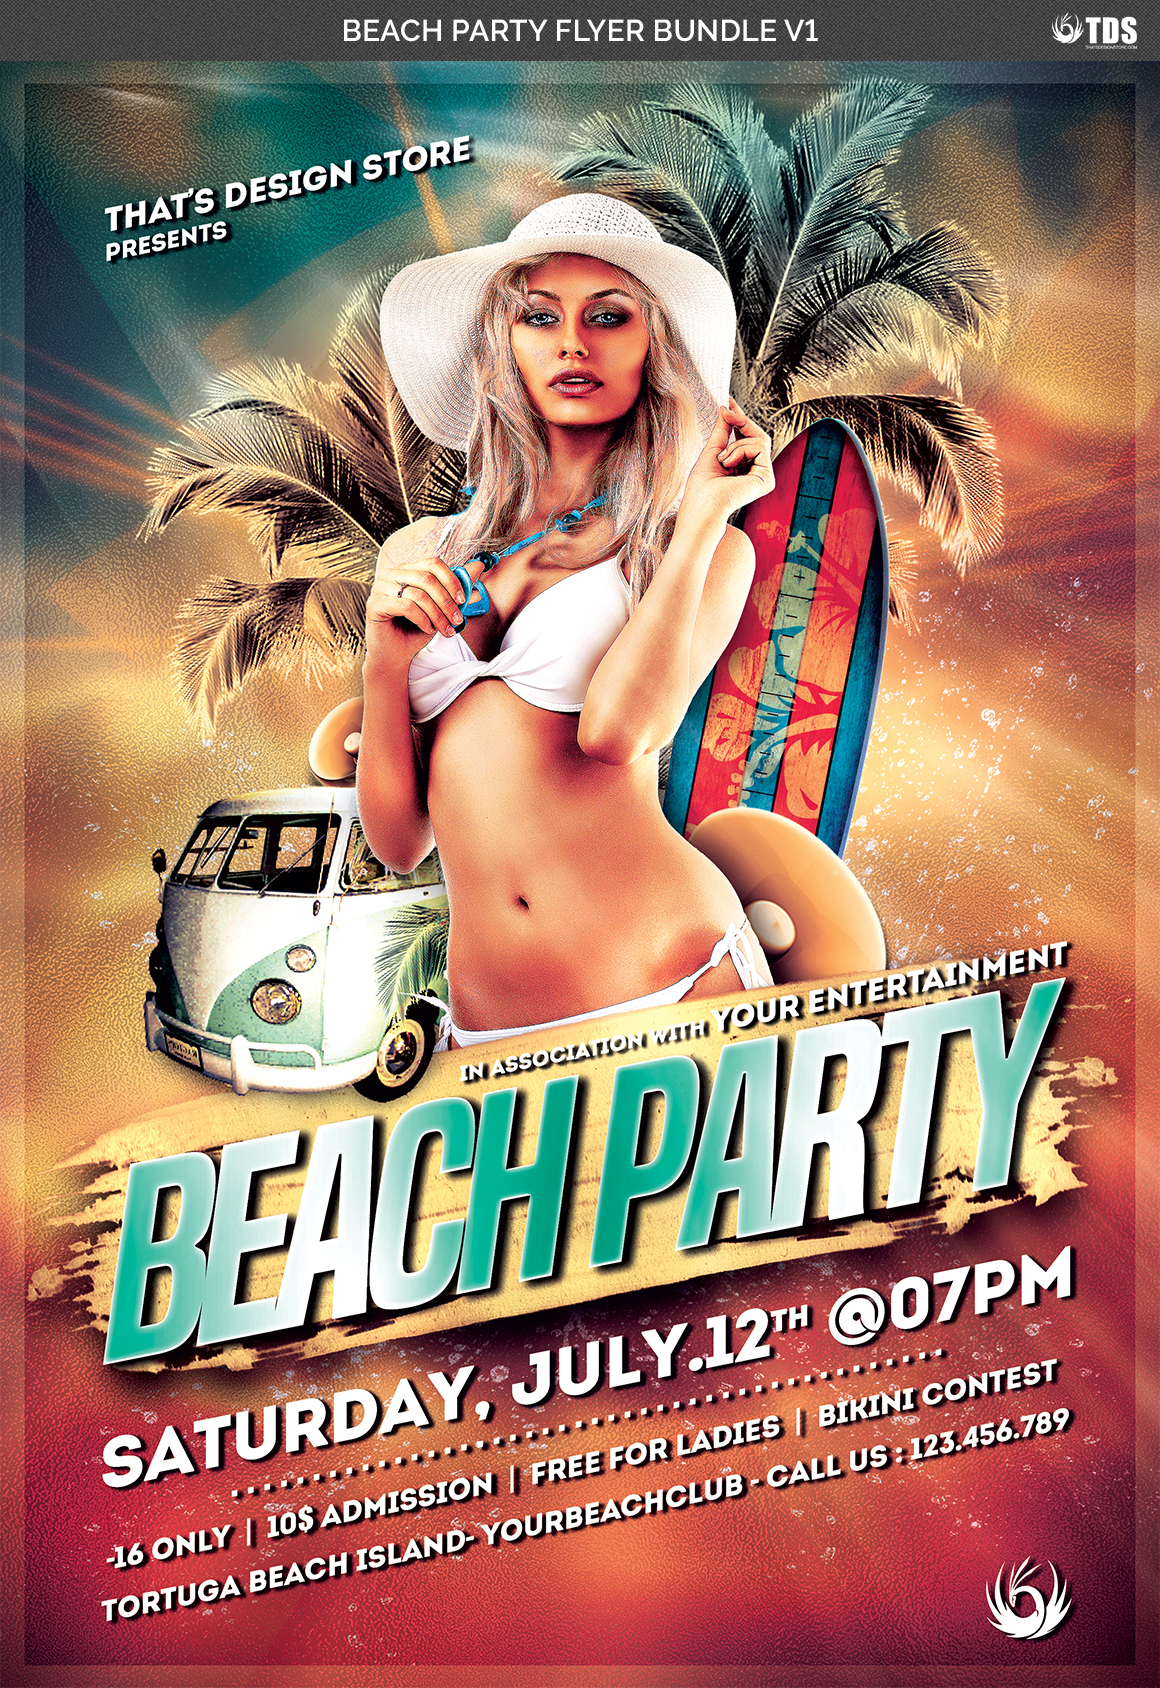 Beach Party Flyer Bundle V1 example image 7